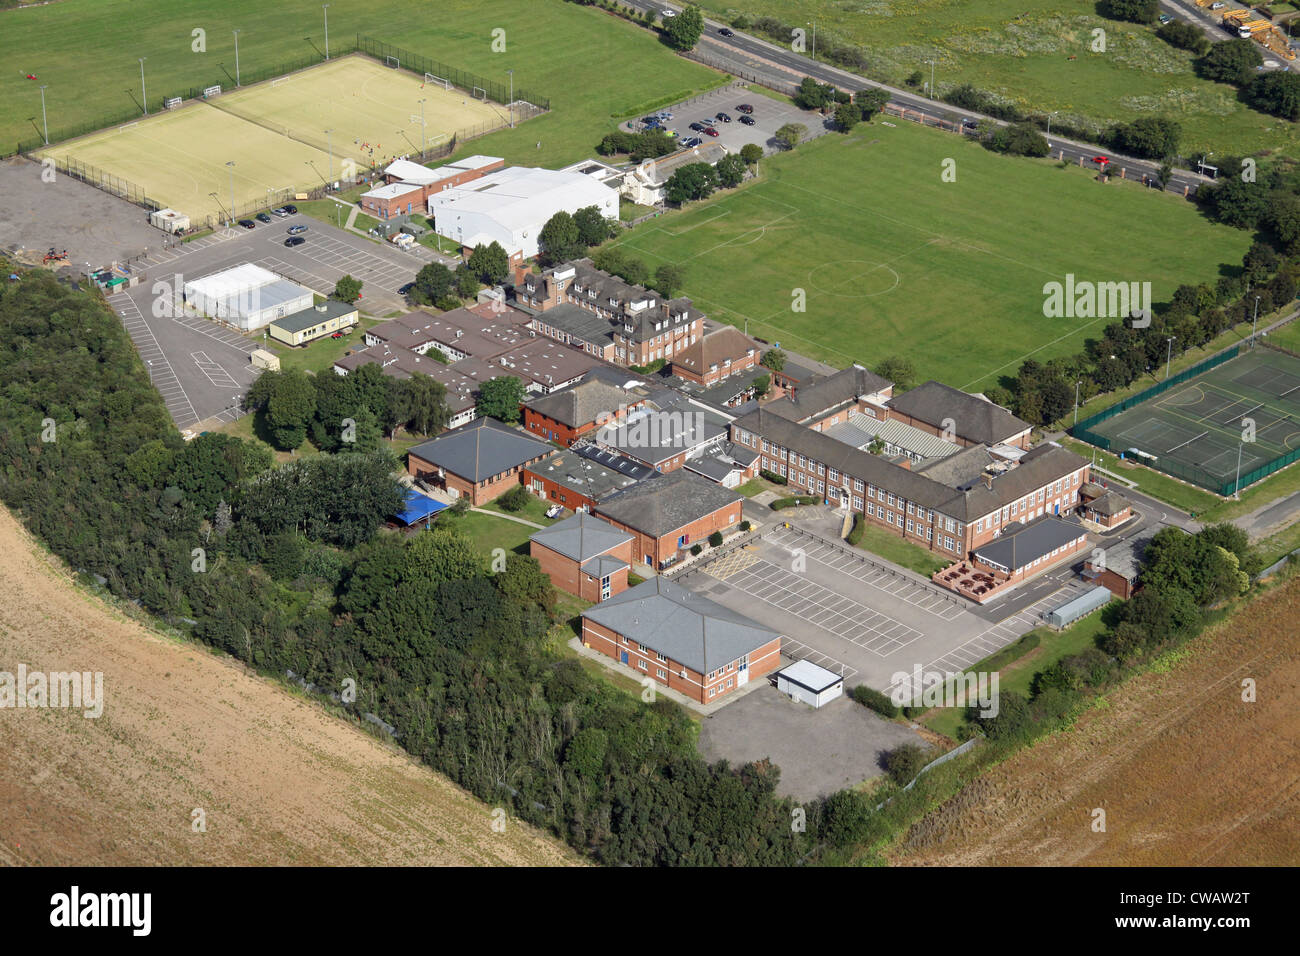 aerial view of Palmer's College, Grays, Thurrock, Essex - Stock Image